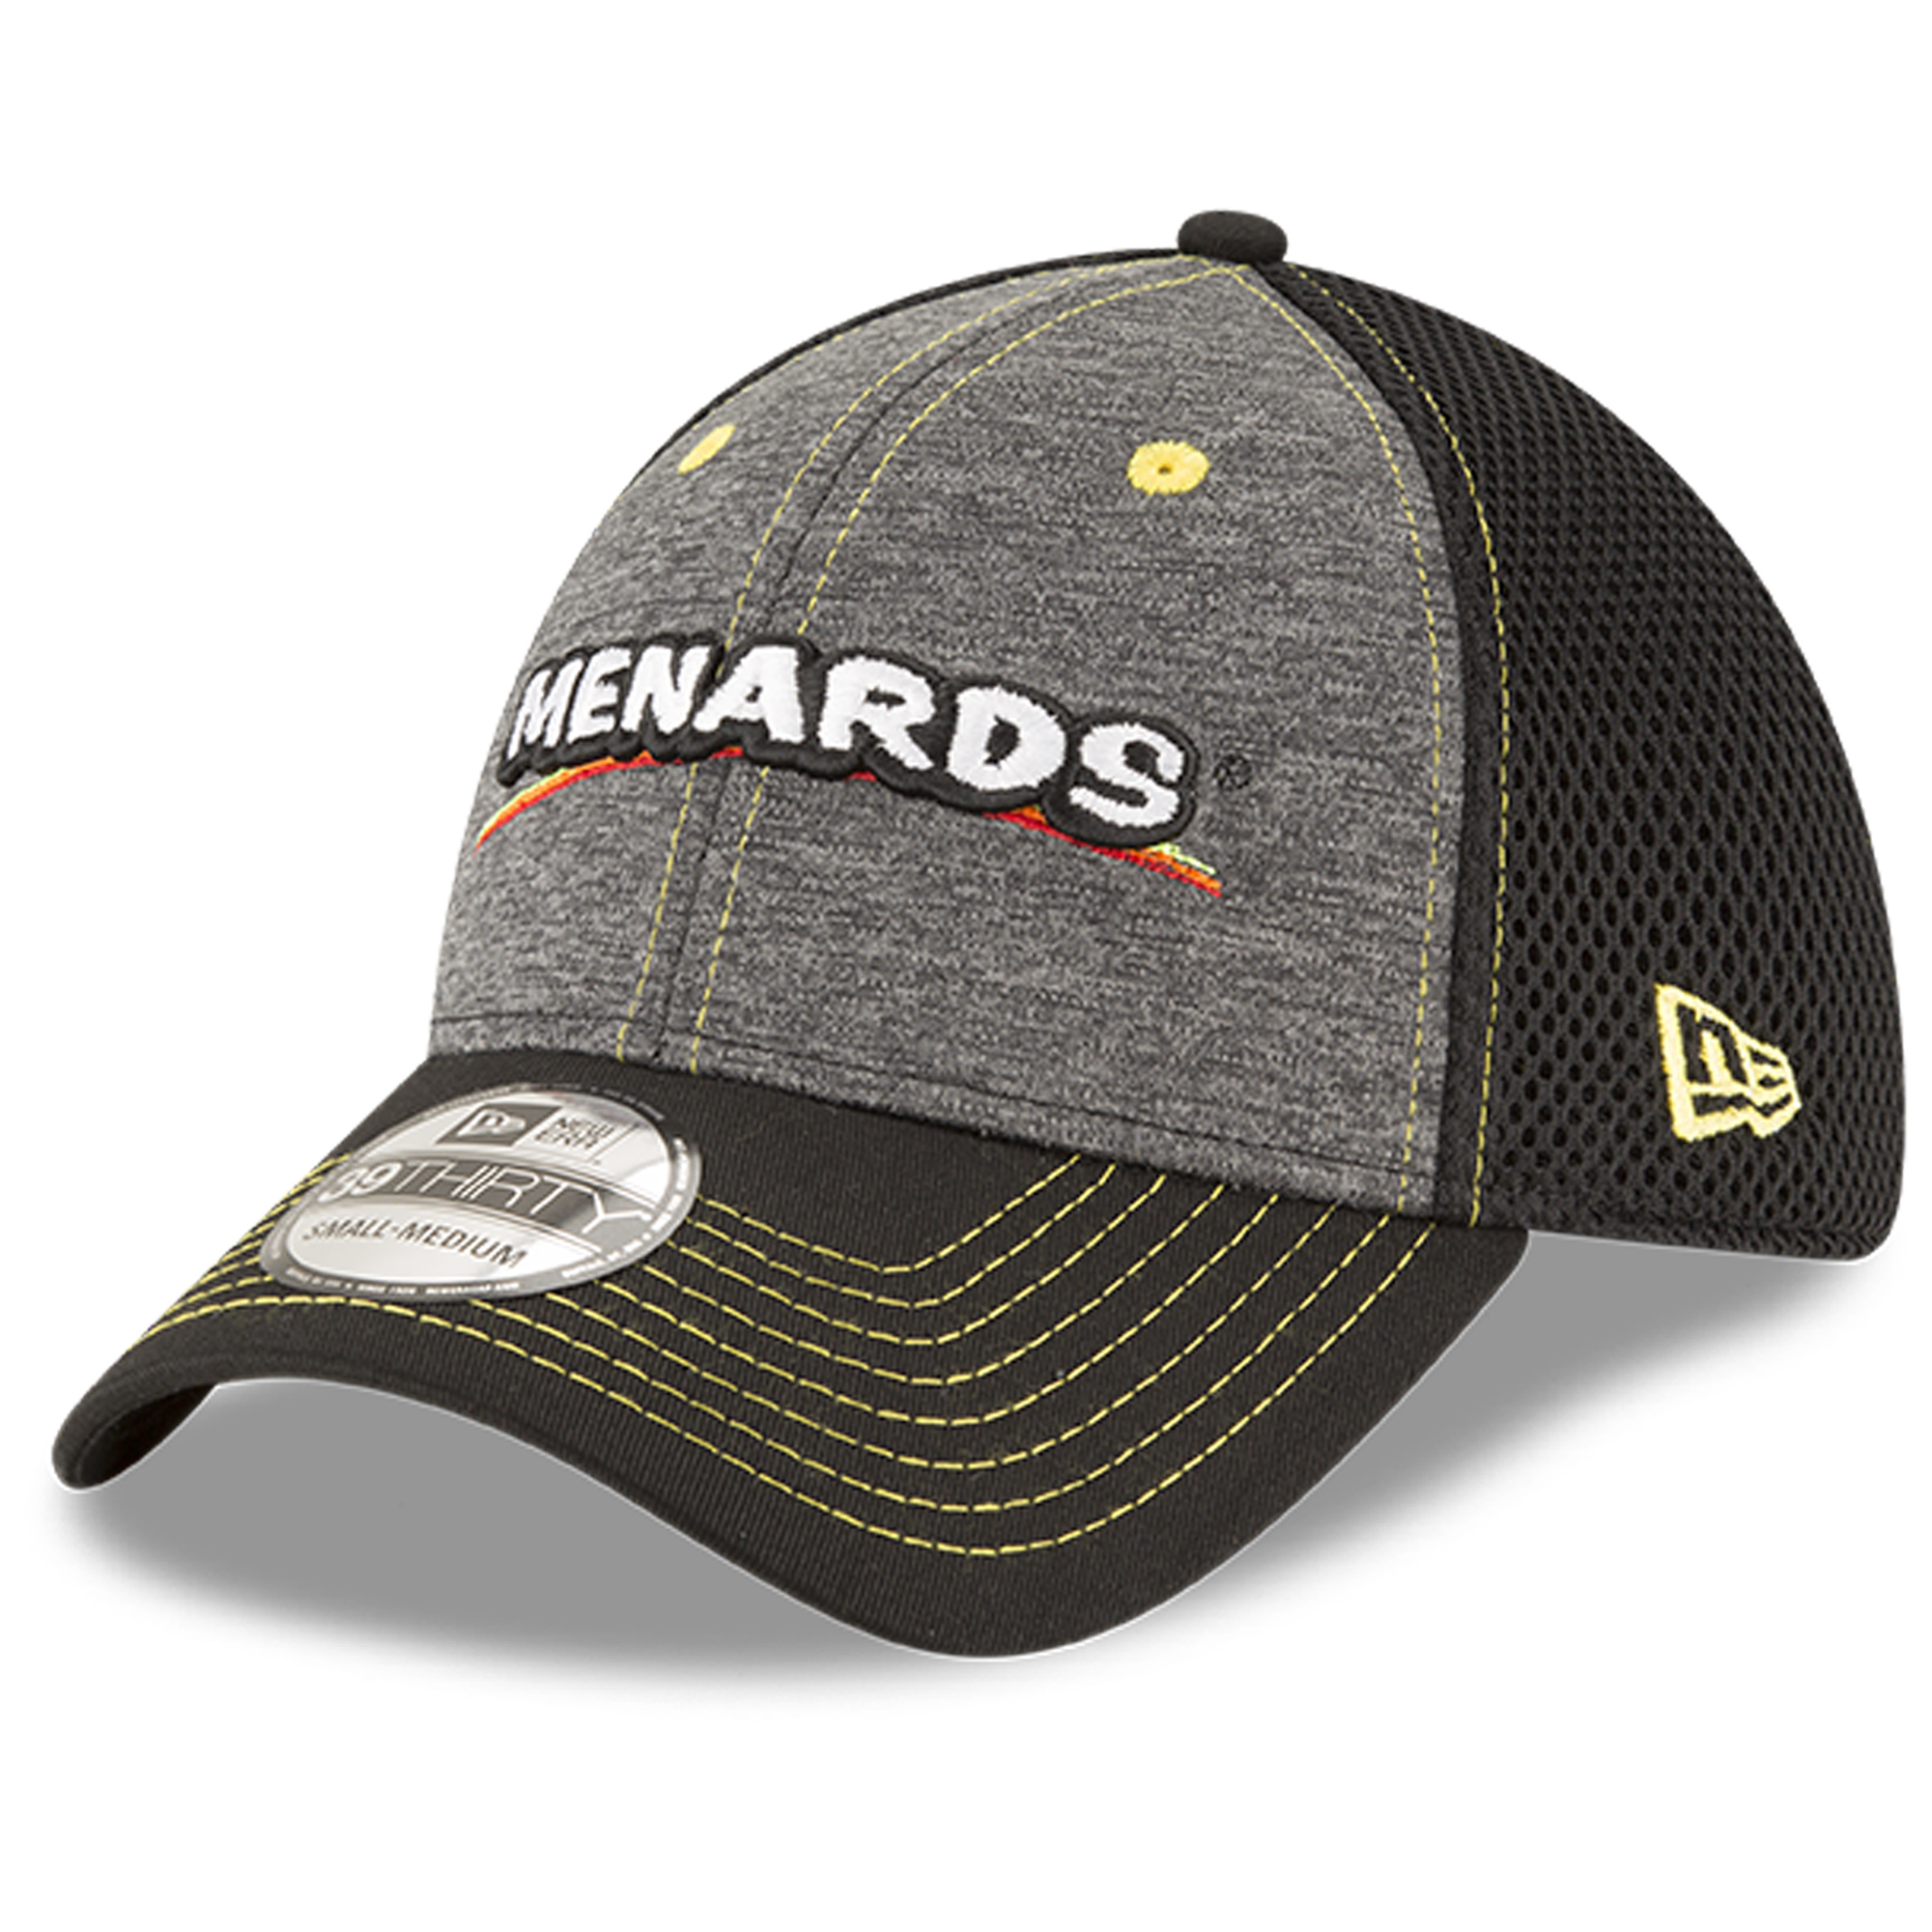 Ryan Blaney New Era Menards Black Neo Sponsor 39THIRTY Flex Hat - Graphite/Black